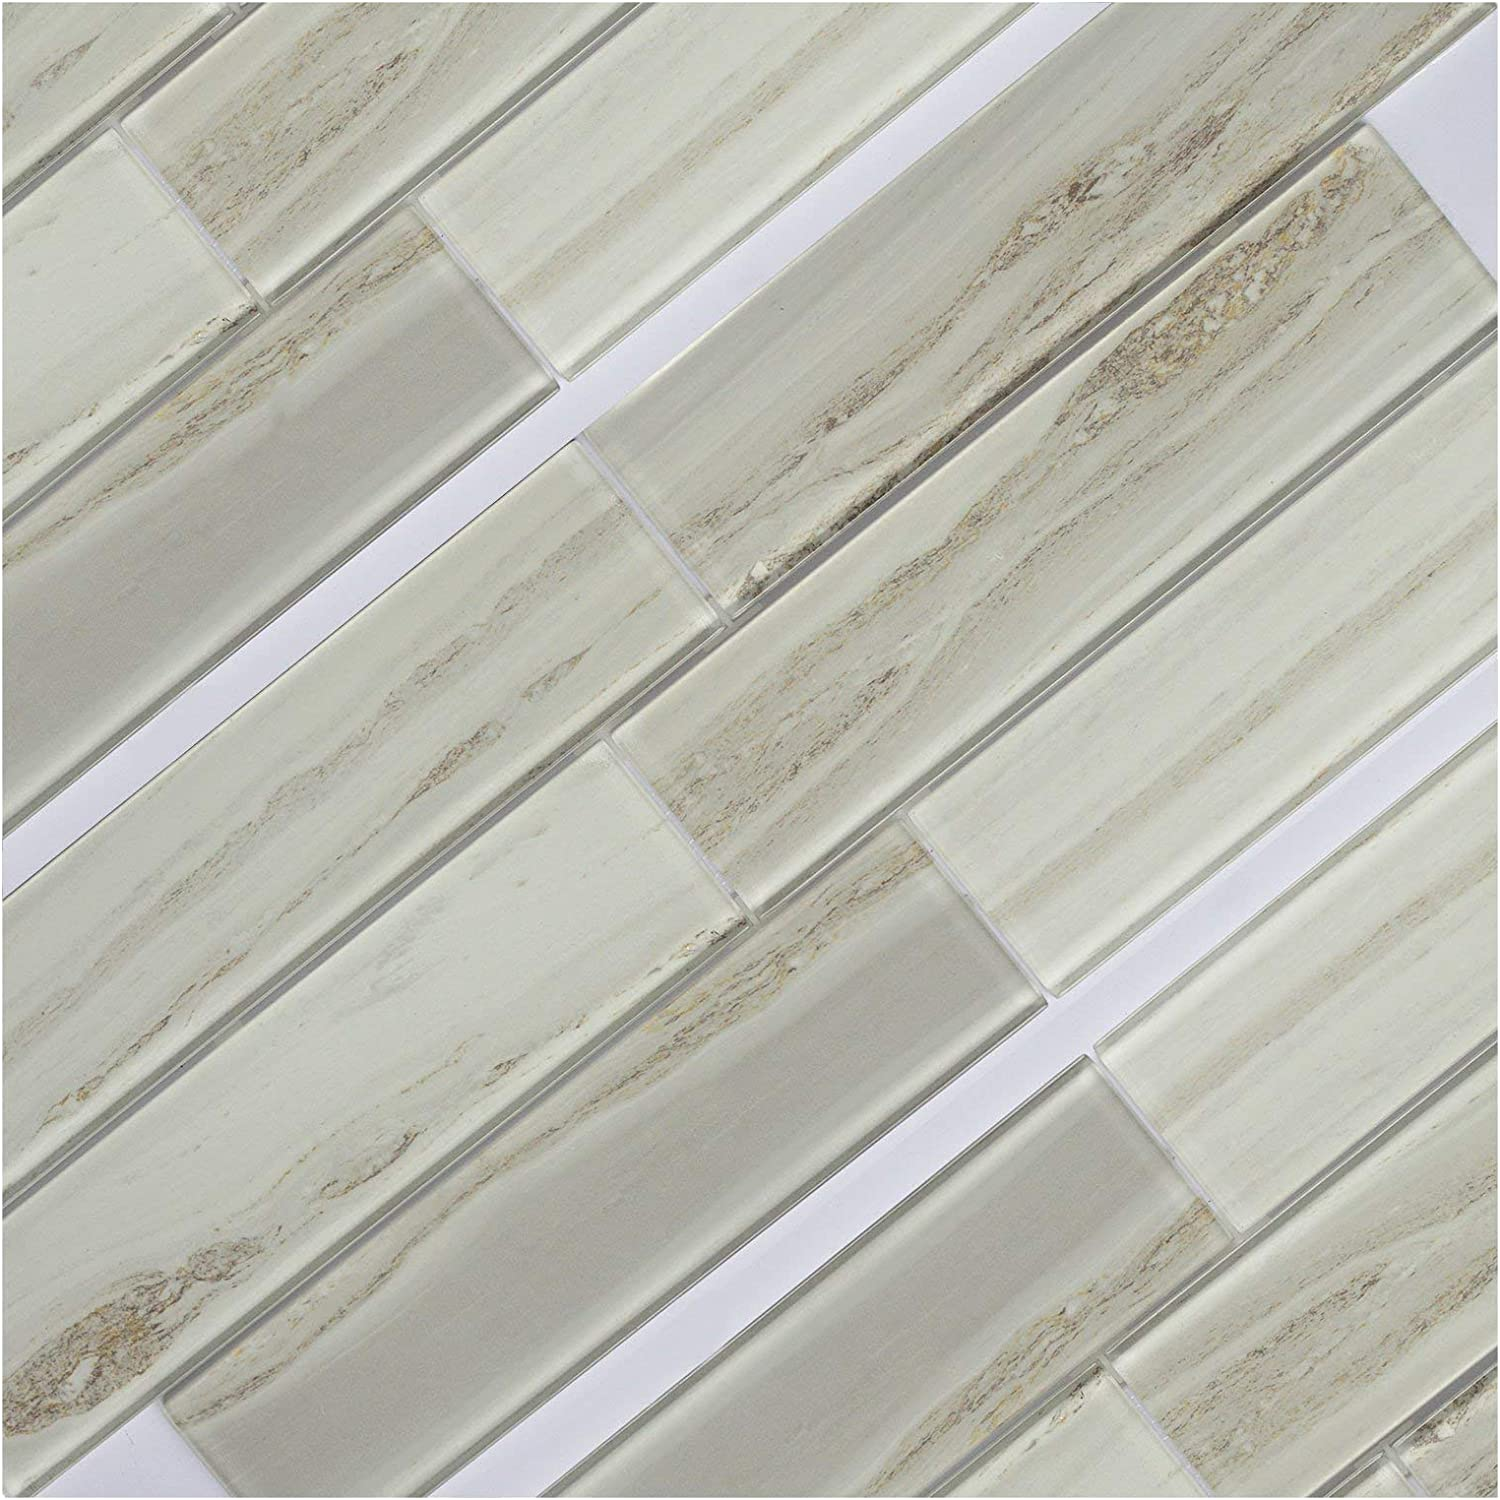 Amazon Com Koozzo Glass Mosaic Tile Rectangular 11 8 X 2 95 A Pack Of 6 Pieces Approx 1 45 Sq Ft For Kitchen Backsplash Shower Wall Bathroom Tile Glossy Beige Home Kitchen